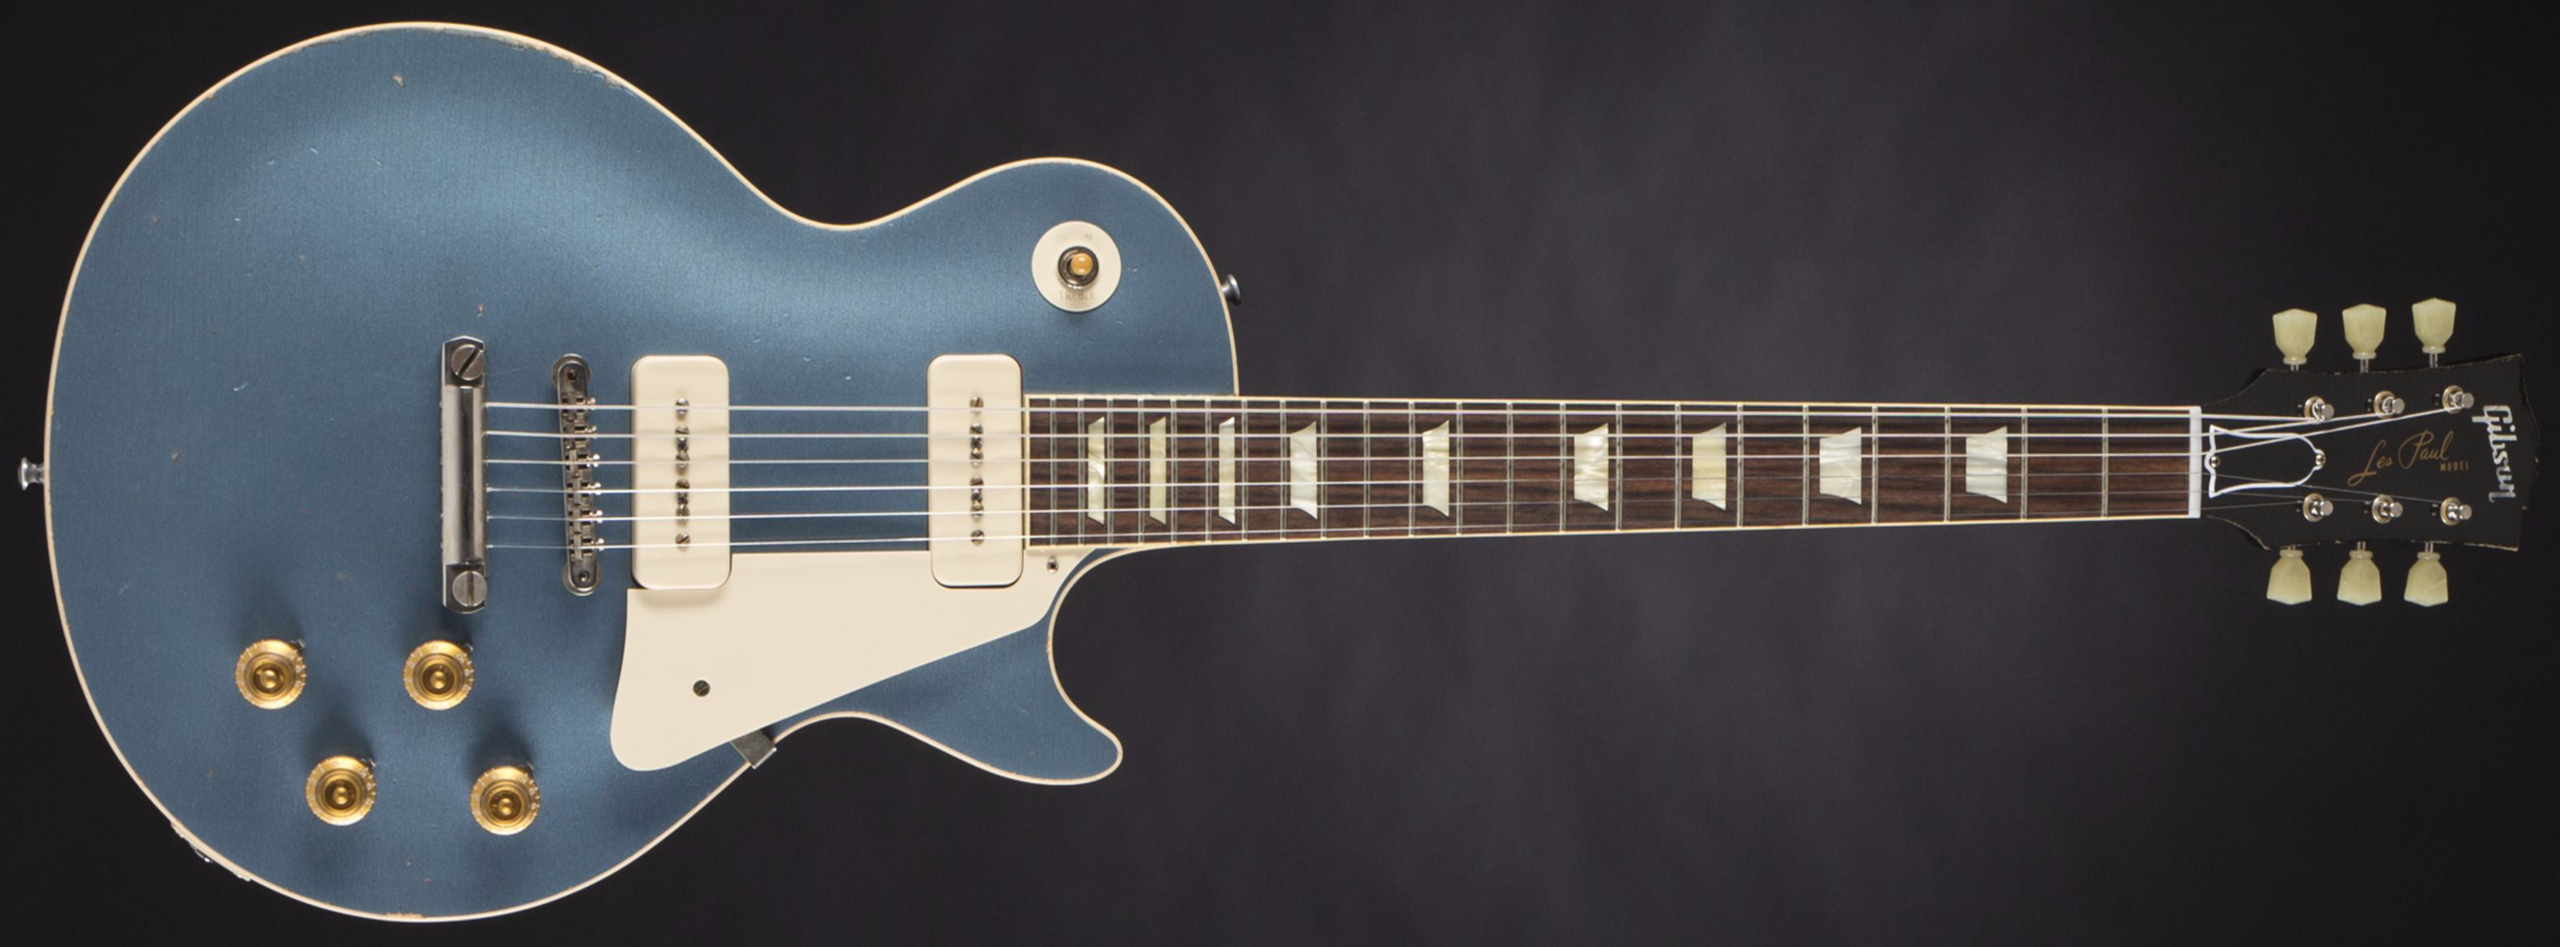 GIBSON 1956 Les Paul Reissue Heavy Aged Pelham Blue #64316